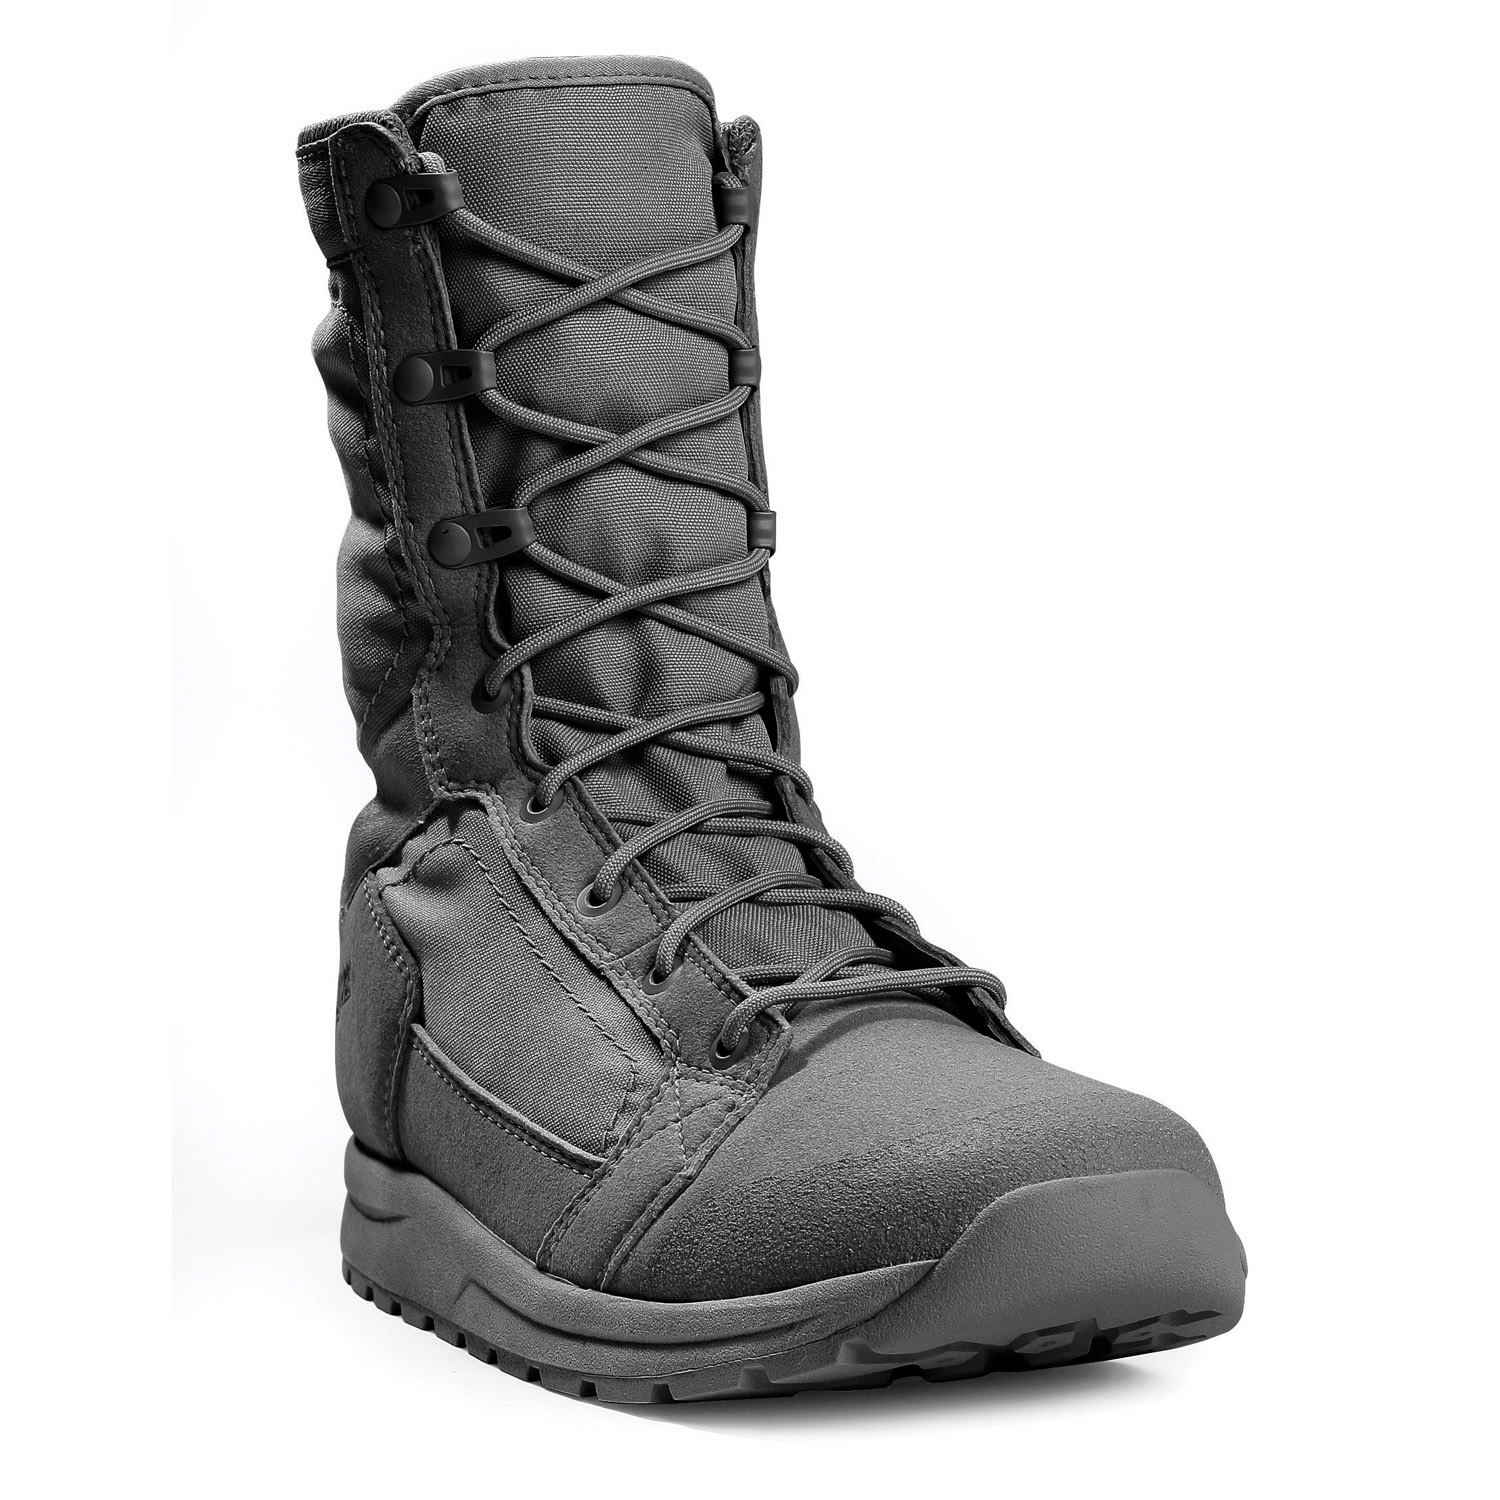 Danner Expedition GTX Hiking Boot - Men's